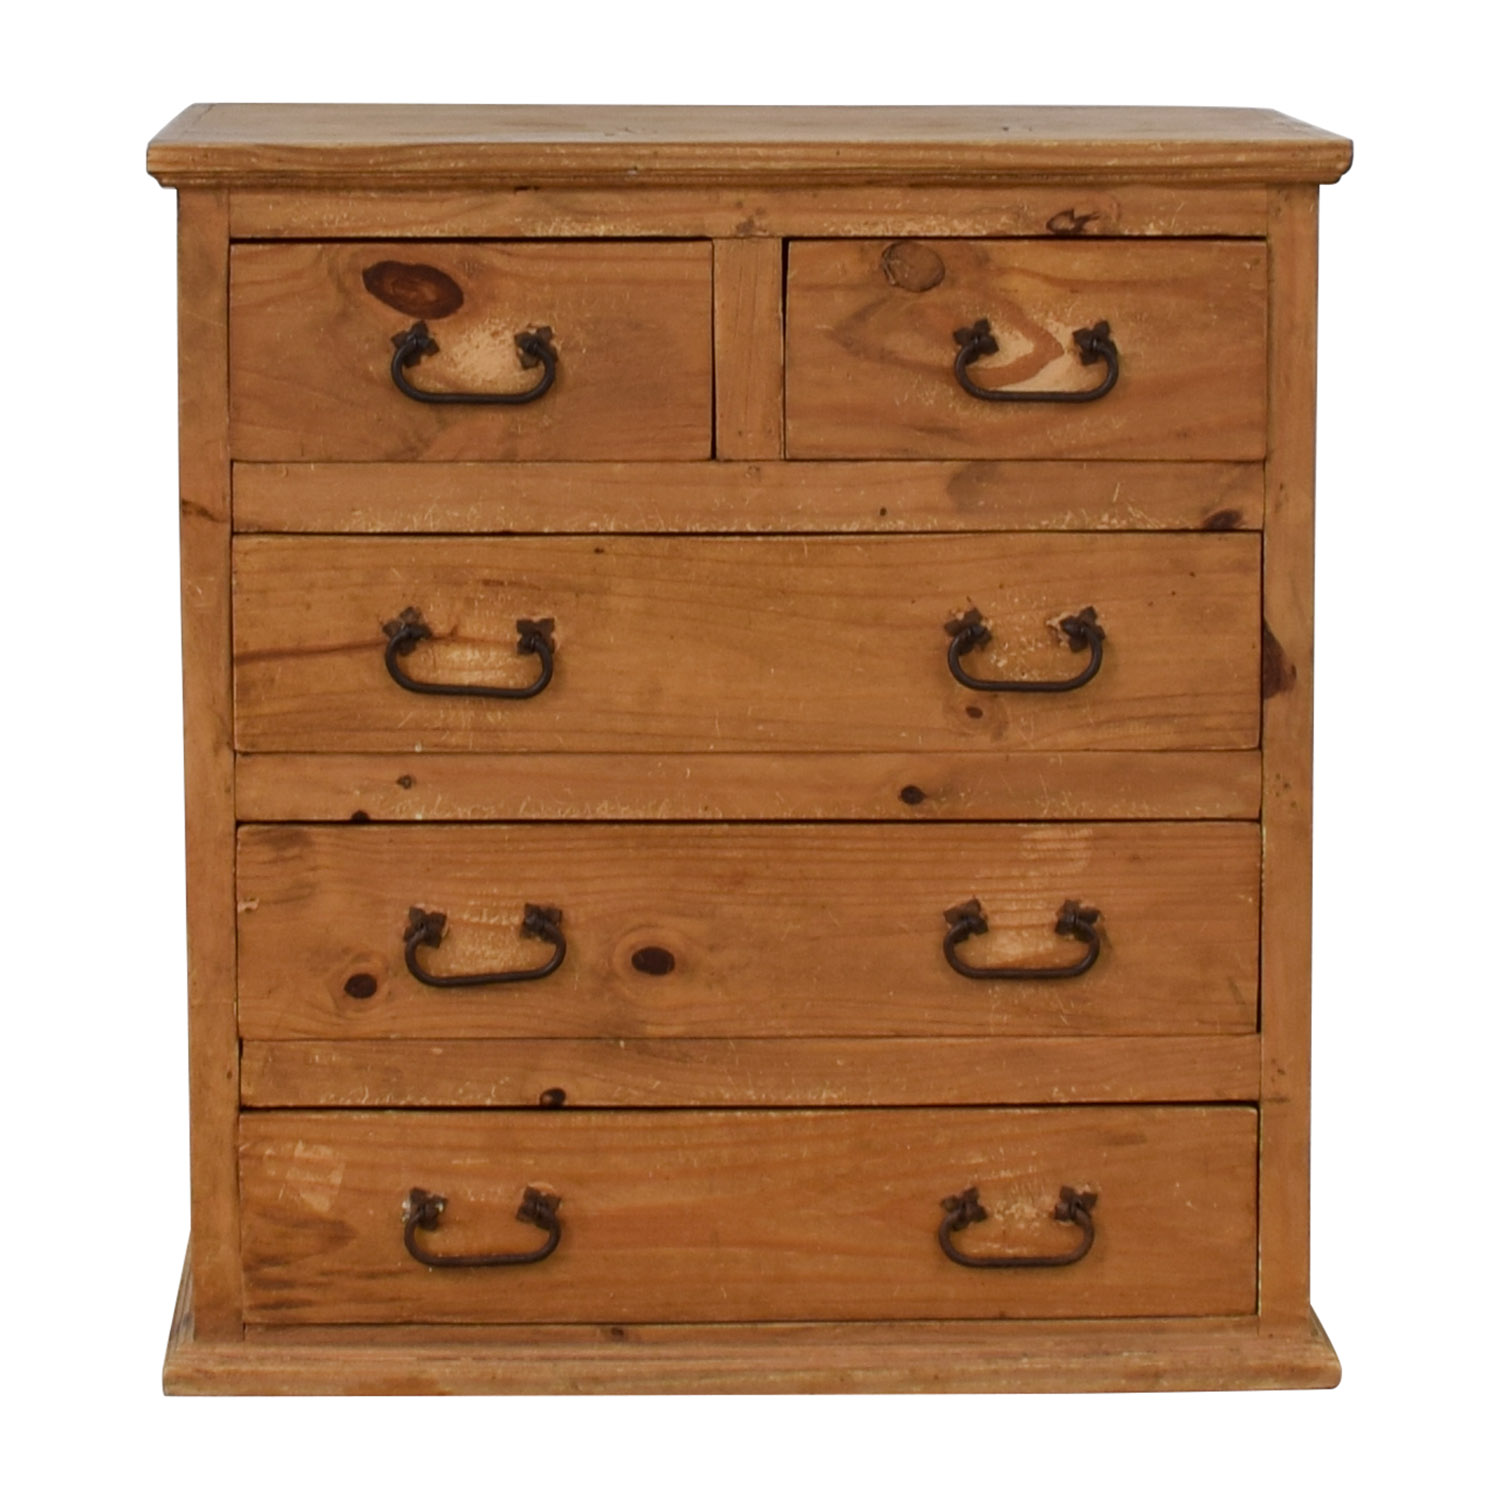 Pottery Barn Pottery Barn Wood Five-Drawer Dresser nyc